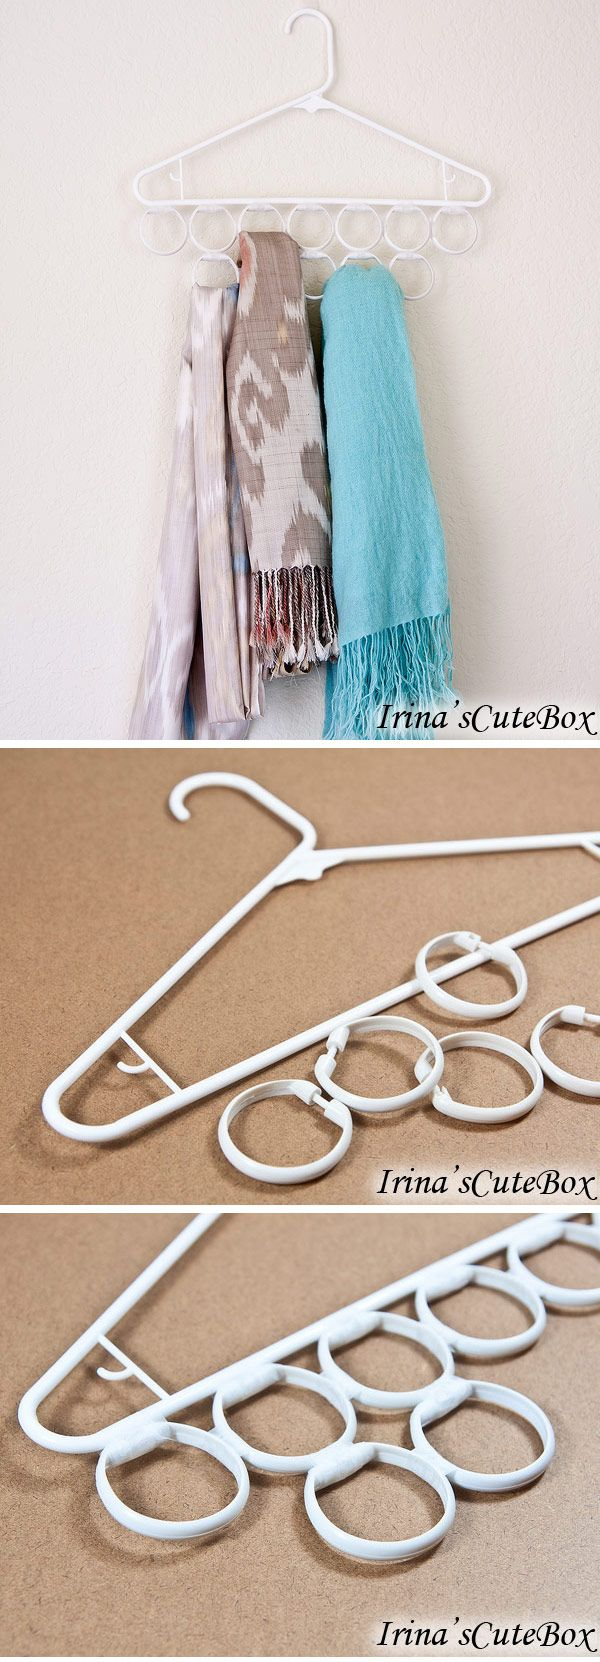 Inexpensive scarves holder idea made of a hanger and shower curtain rings!    The is BRILLIANT!